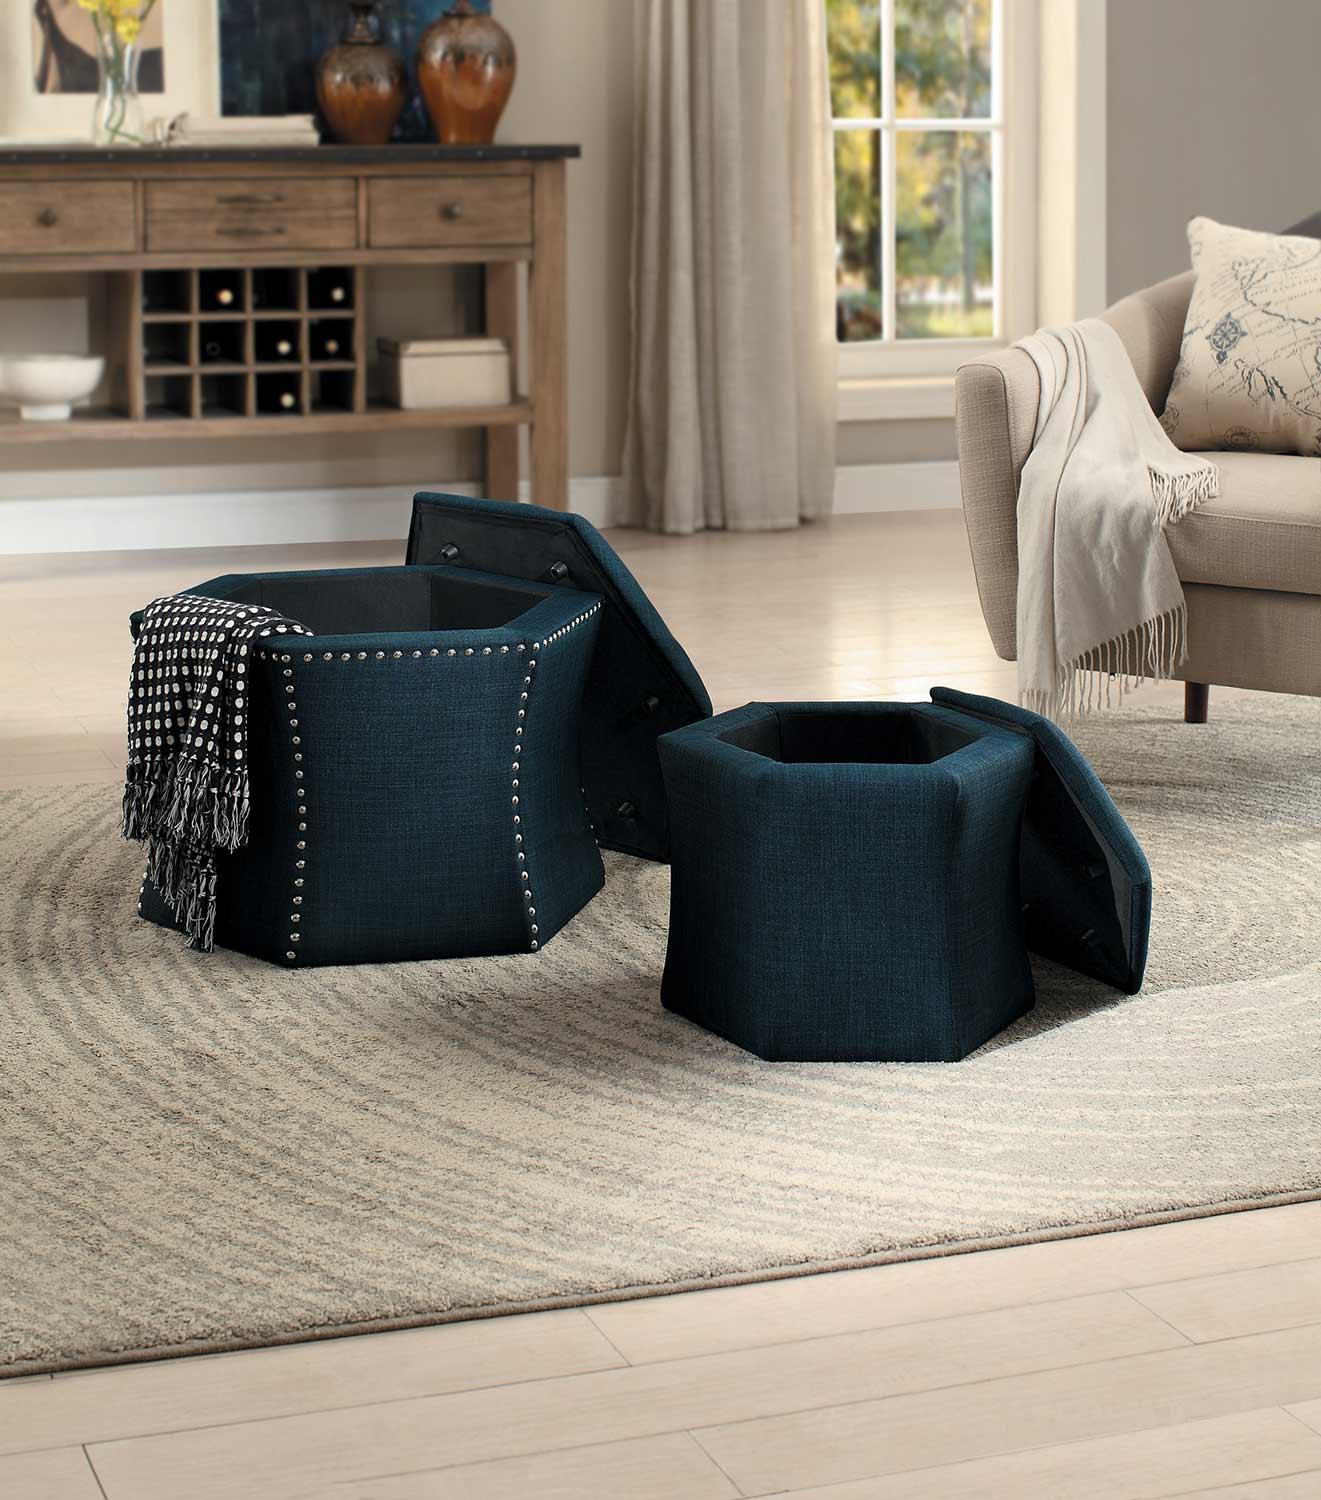 Beau Homelegance Kennelly 2 Piece Storage Ottoman Set   Blue